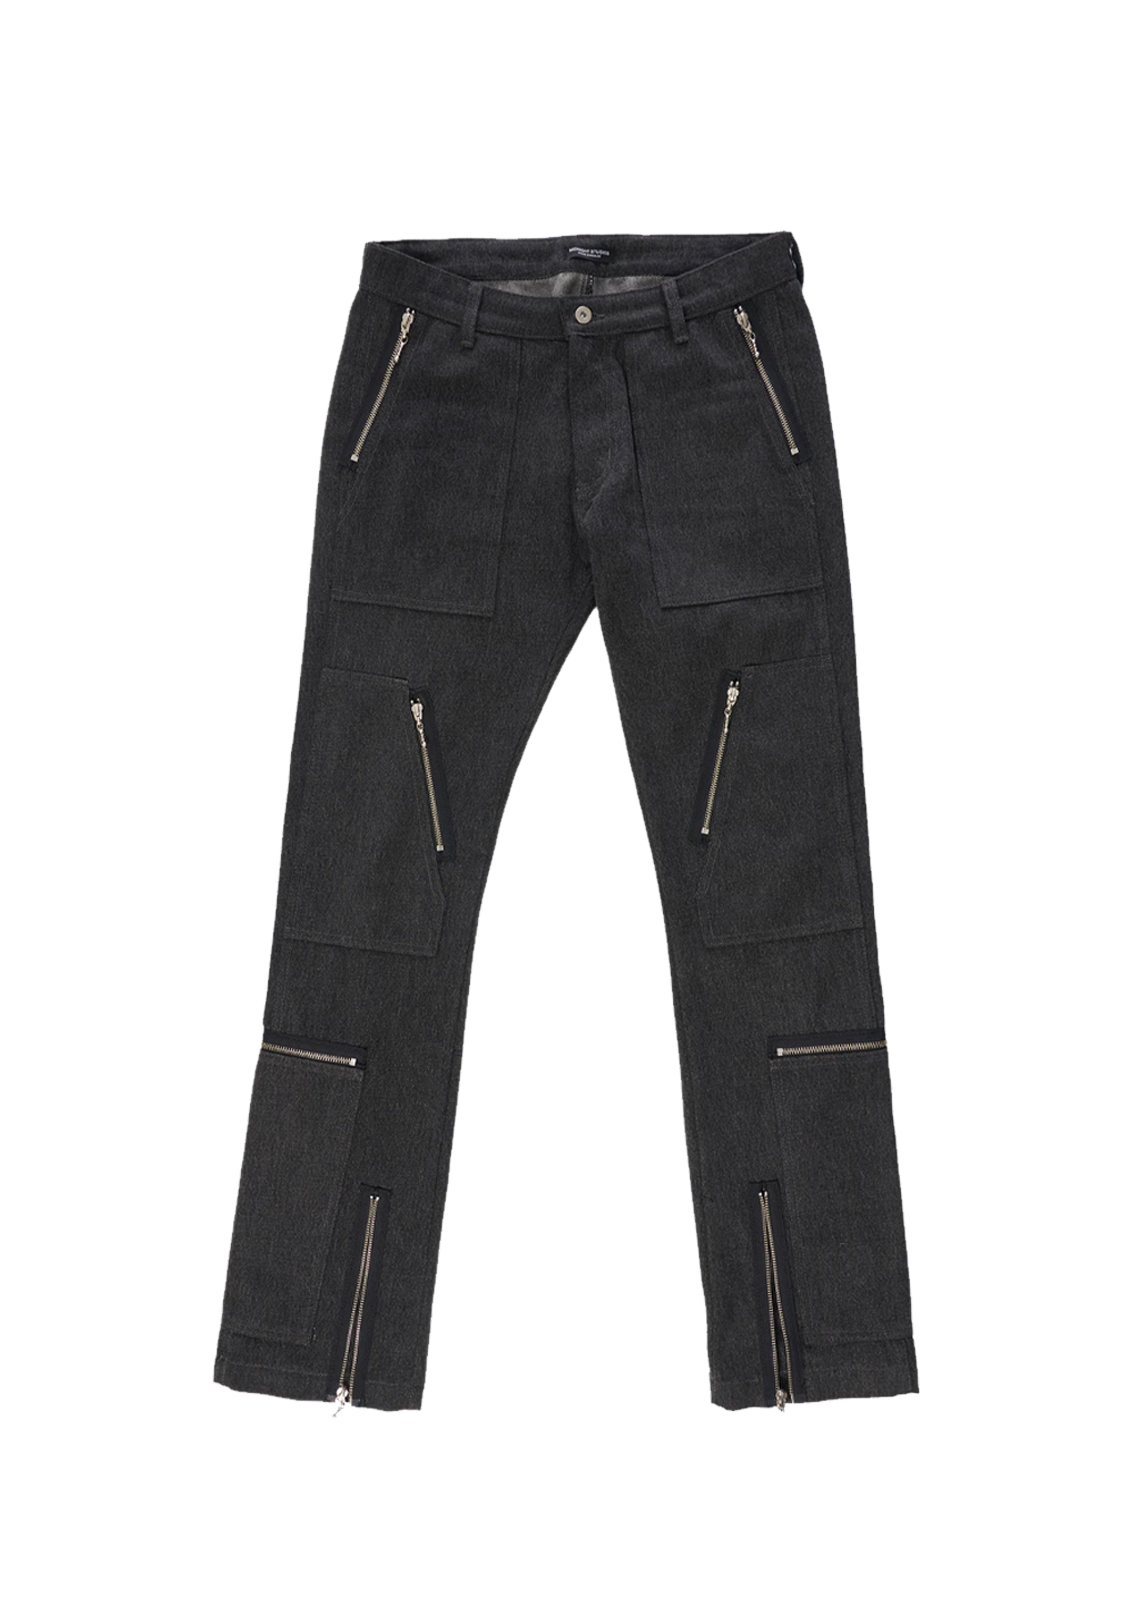 Denim Cargo Slim Fit Jeans - Black